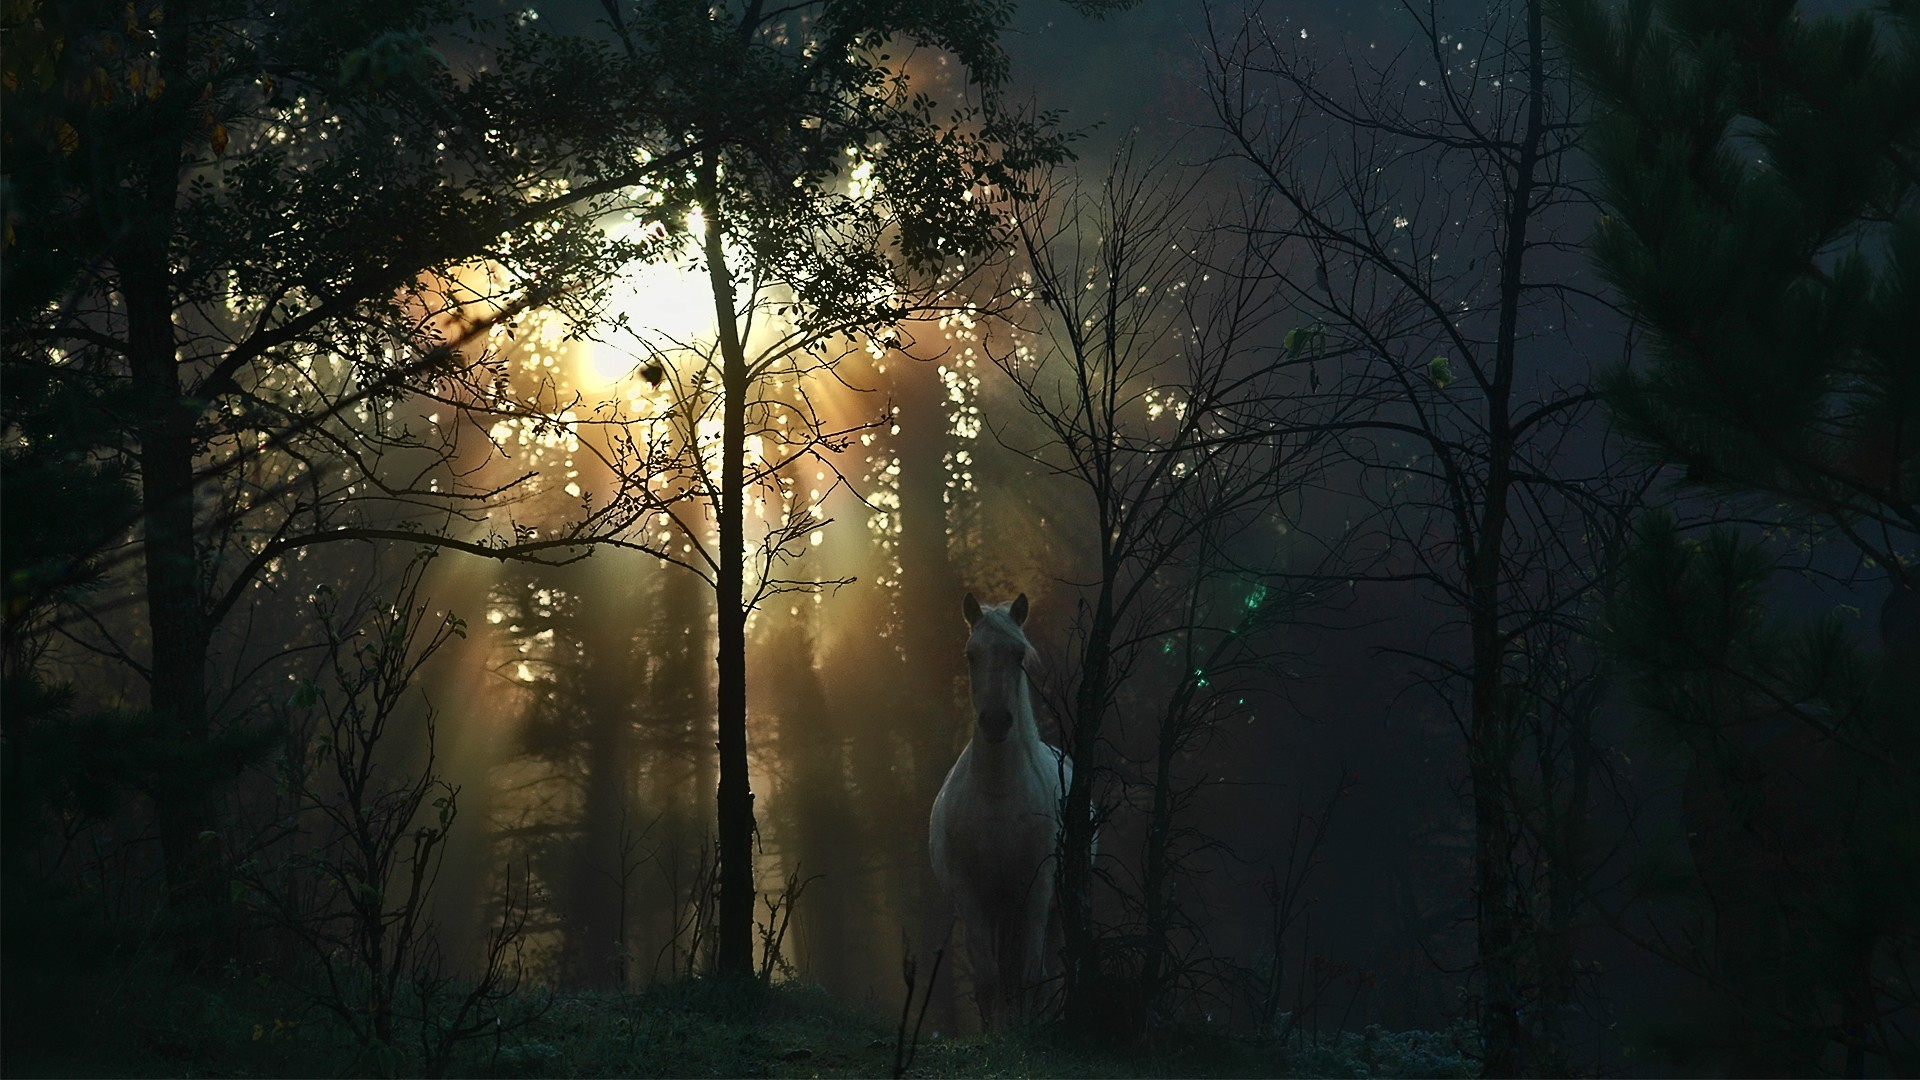 Must see Wallpaper Horse Forest - white-horse-in-the-forest-wallpaper  HD_52151.jpg